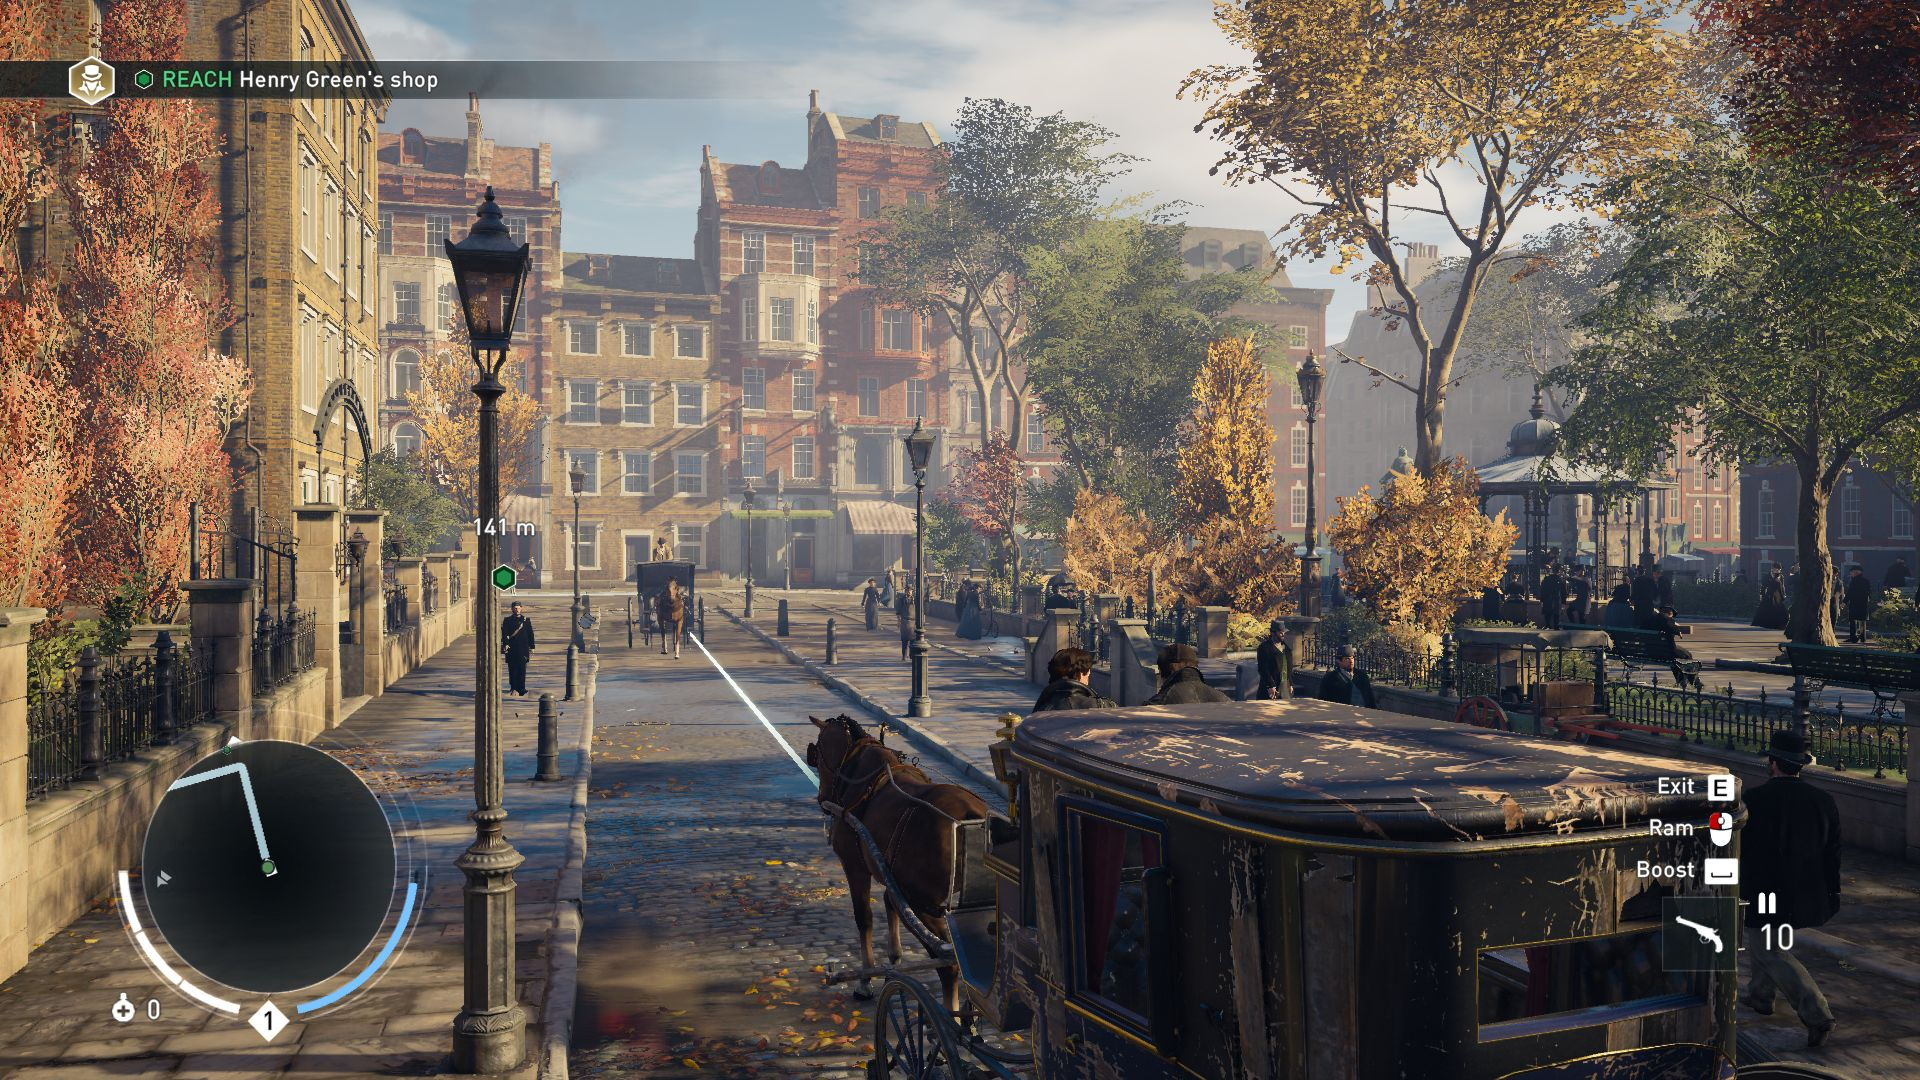 London Hd Wallpaper Iphone 6 Assassin S Creed Syndicate Notebook Benchmarks